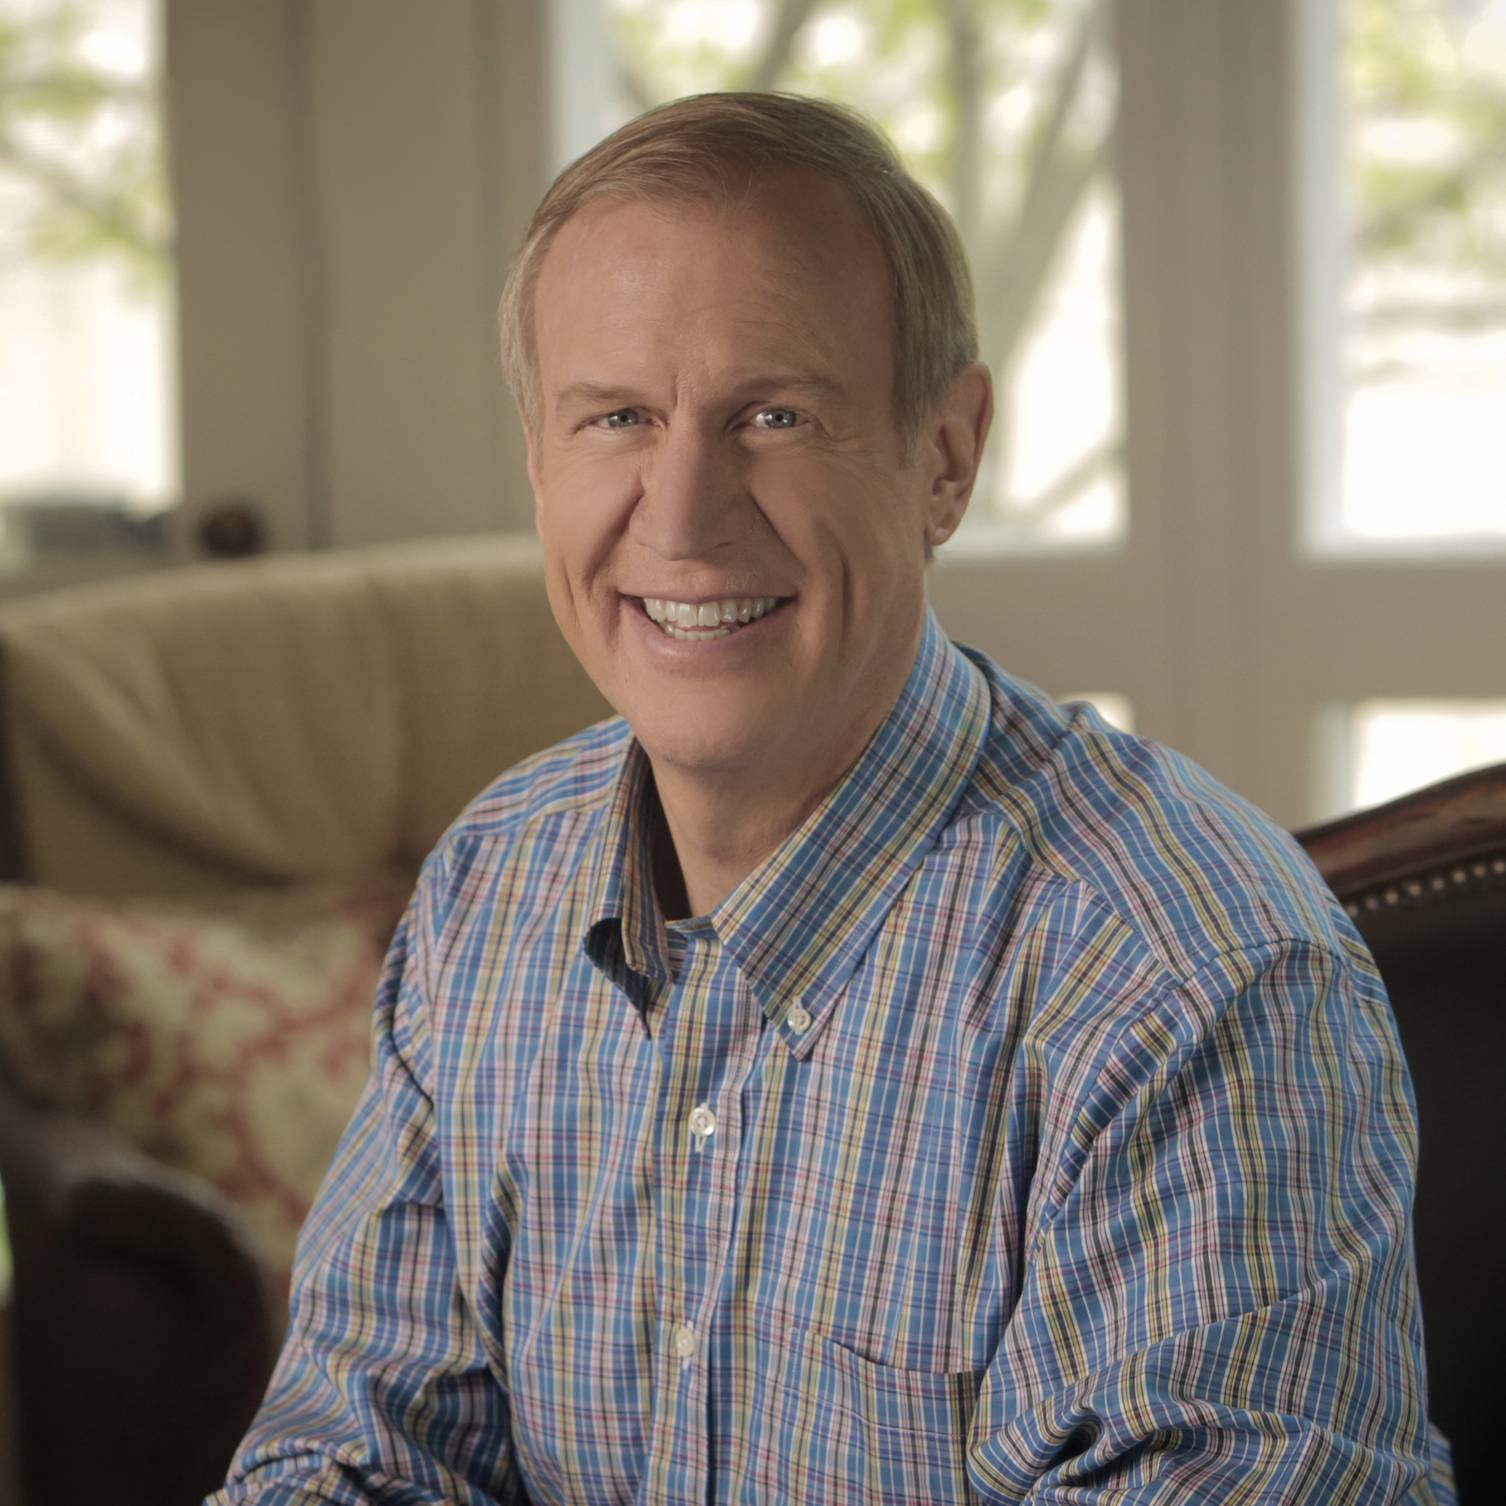 Bruce Rauner, running for Governor